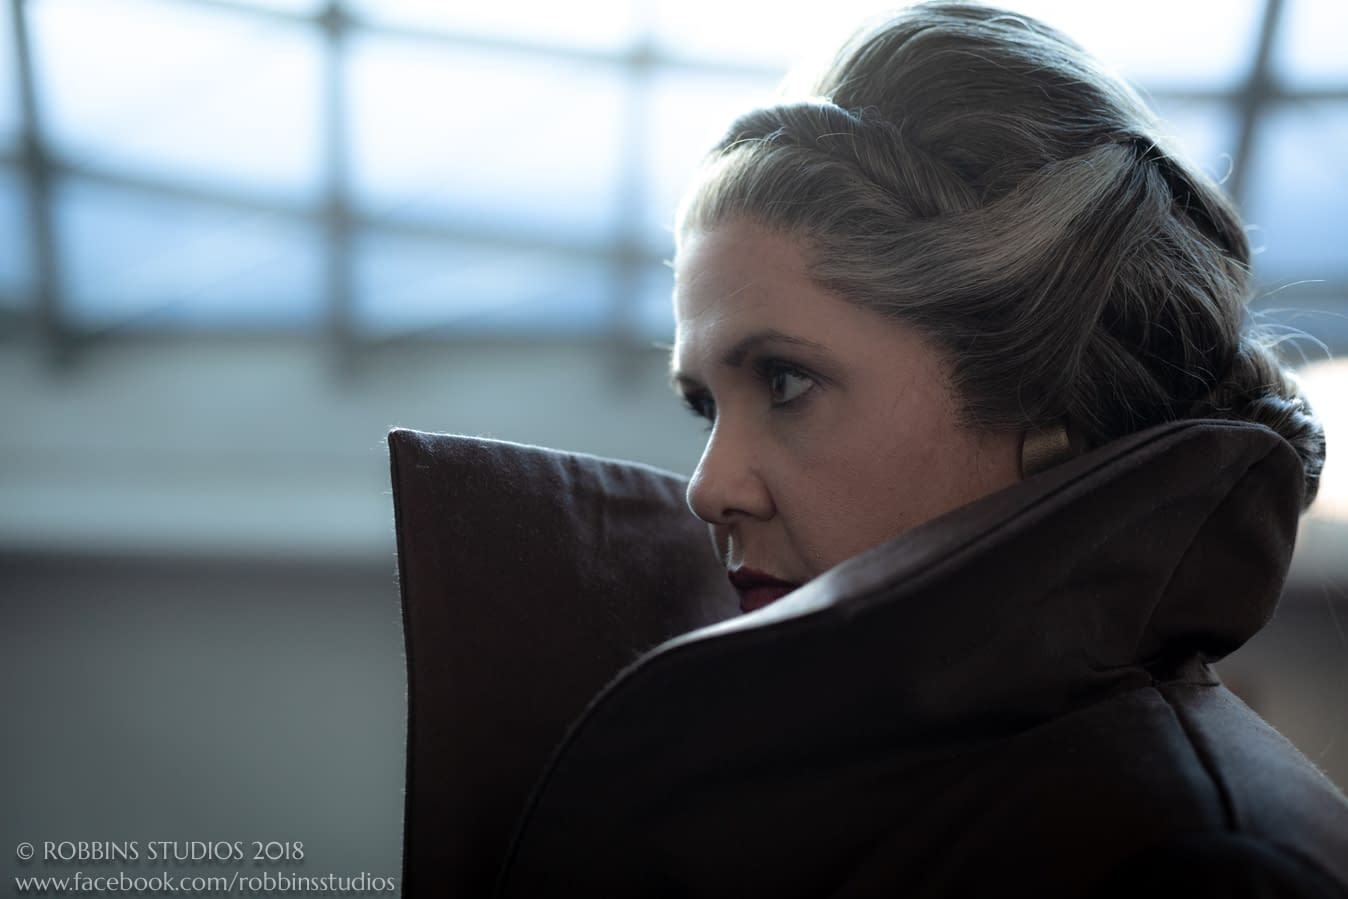 Dragon Con: General Leia Cosplay That'll Make You Cry